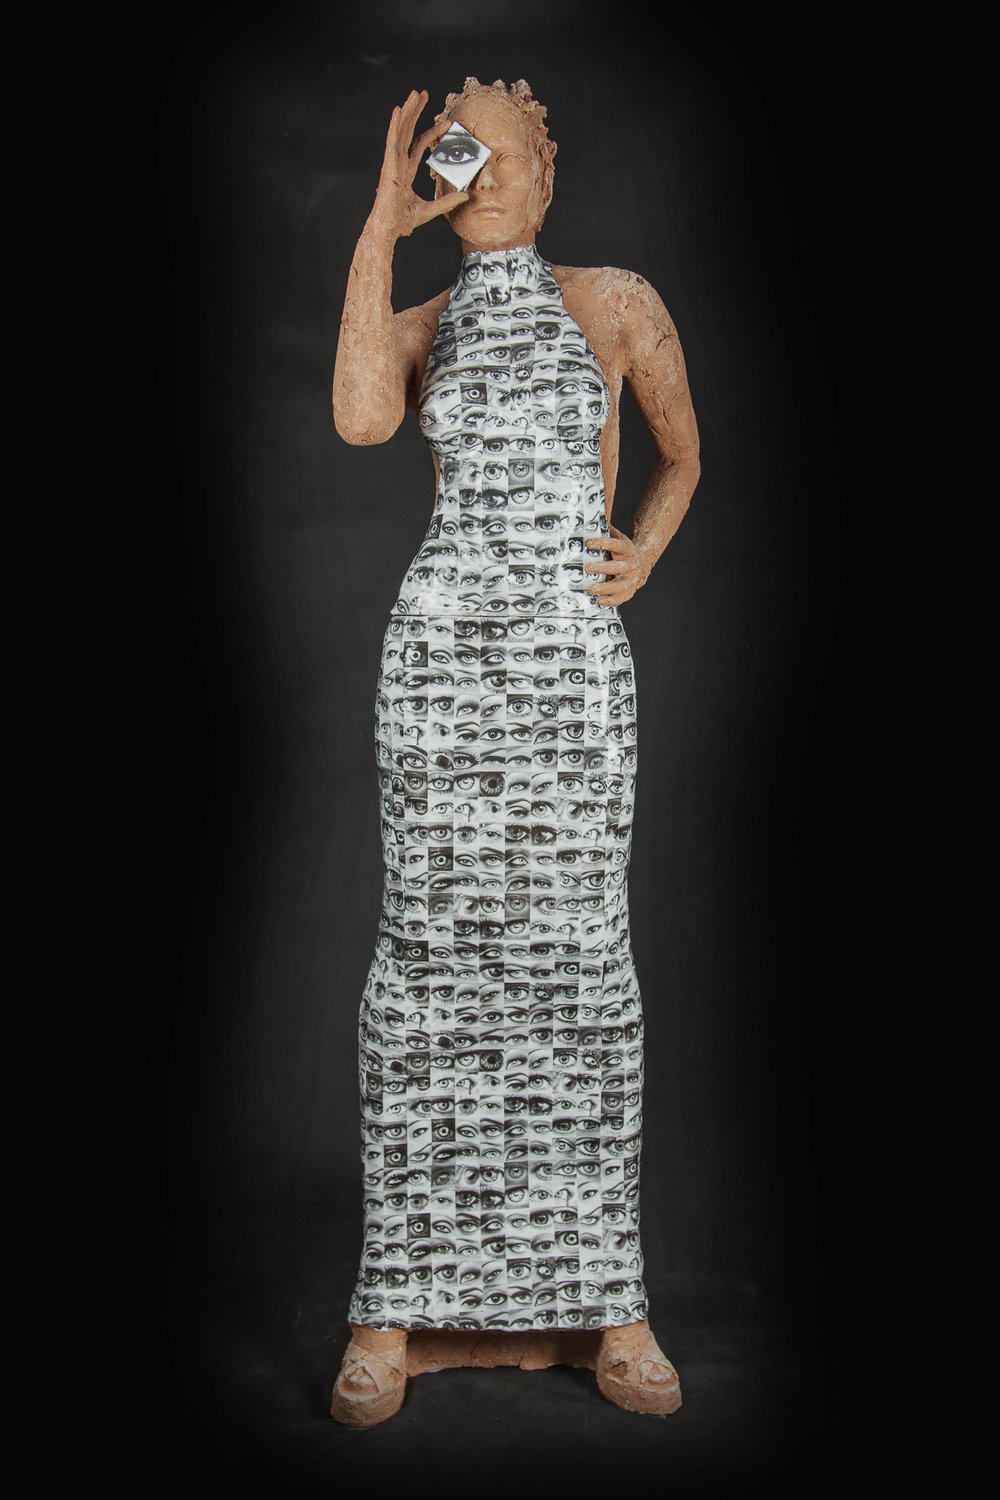 I HAD TO BE YOU   Ceramic and glazes   63 x 25 x 16""